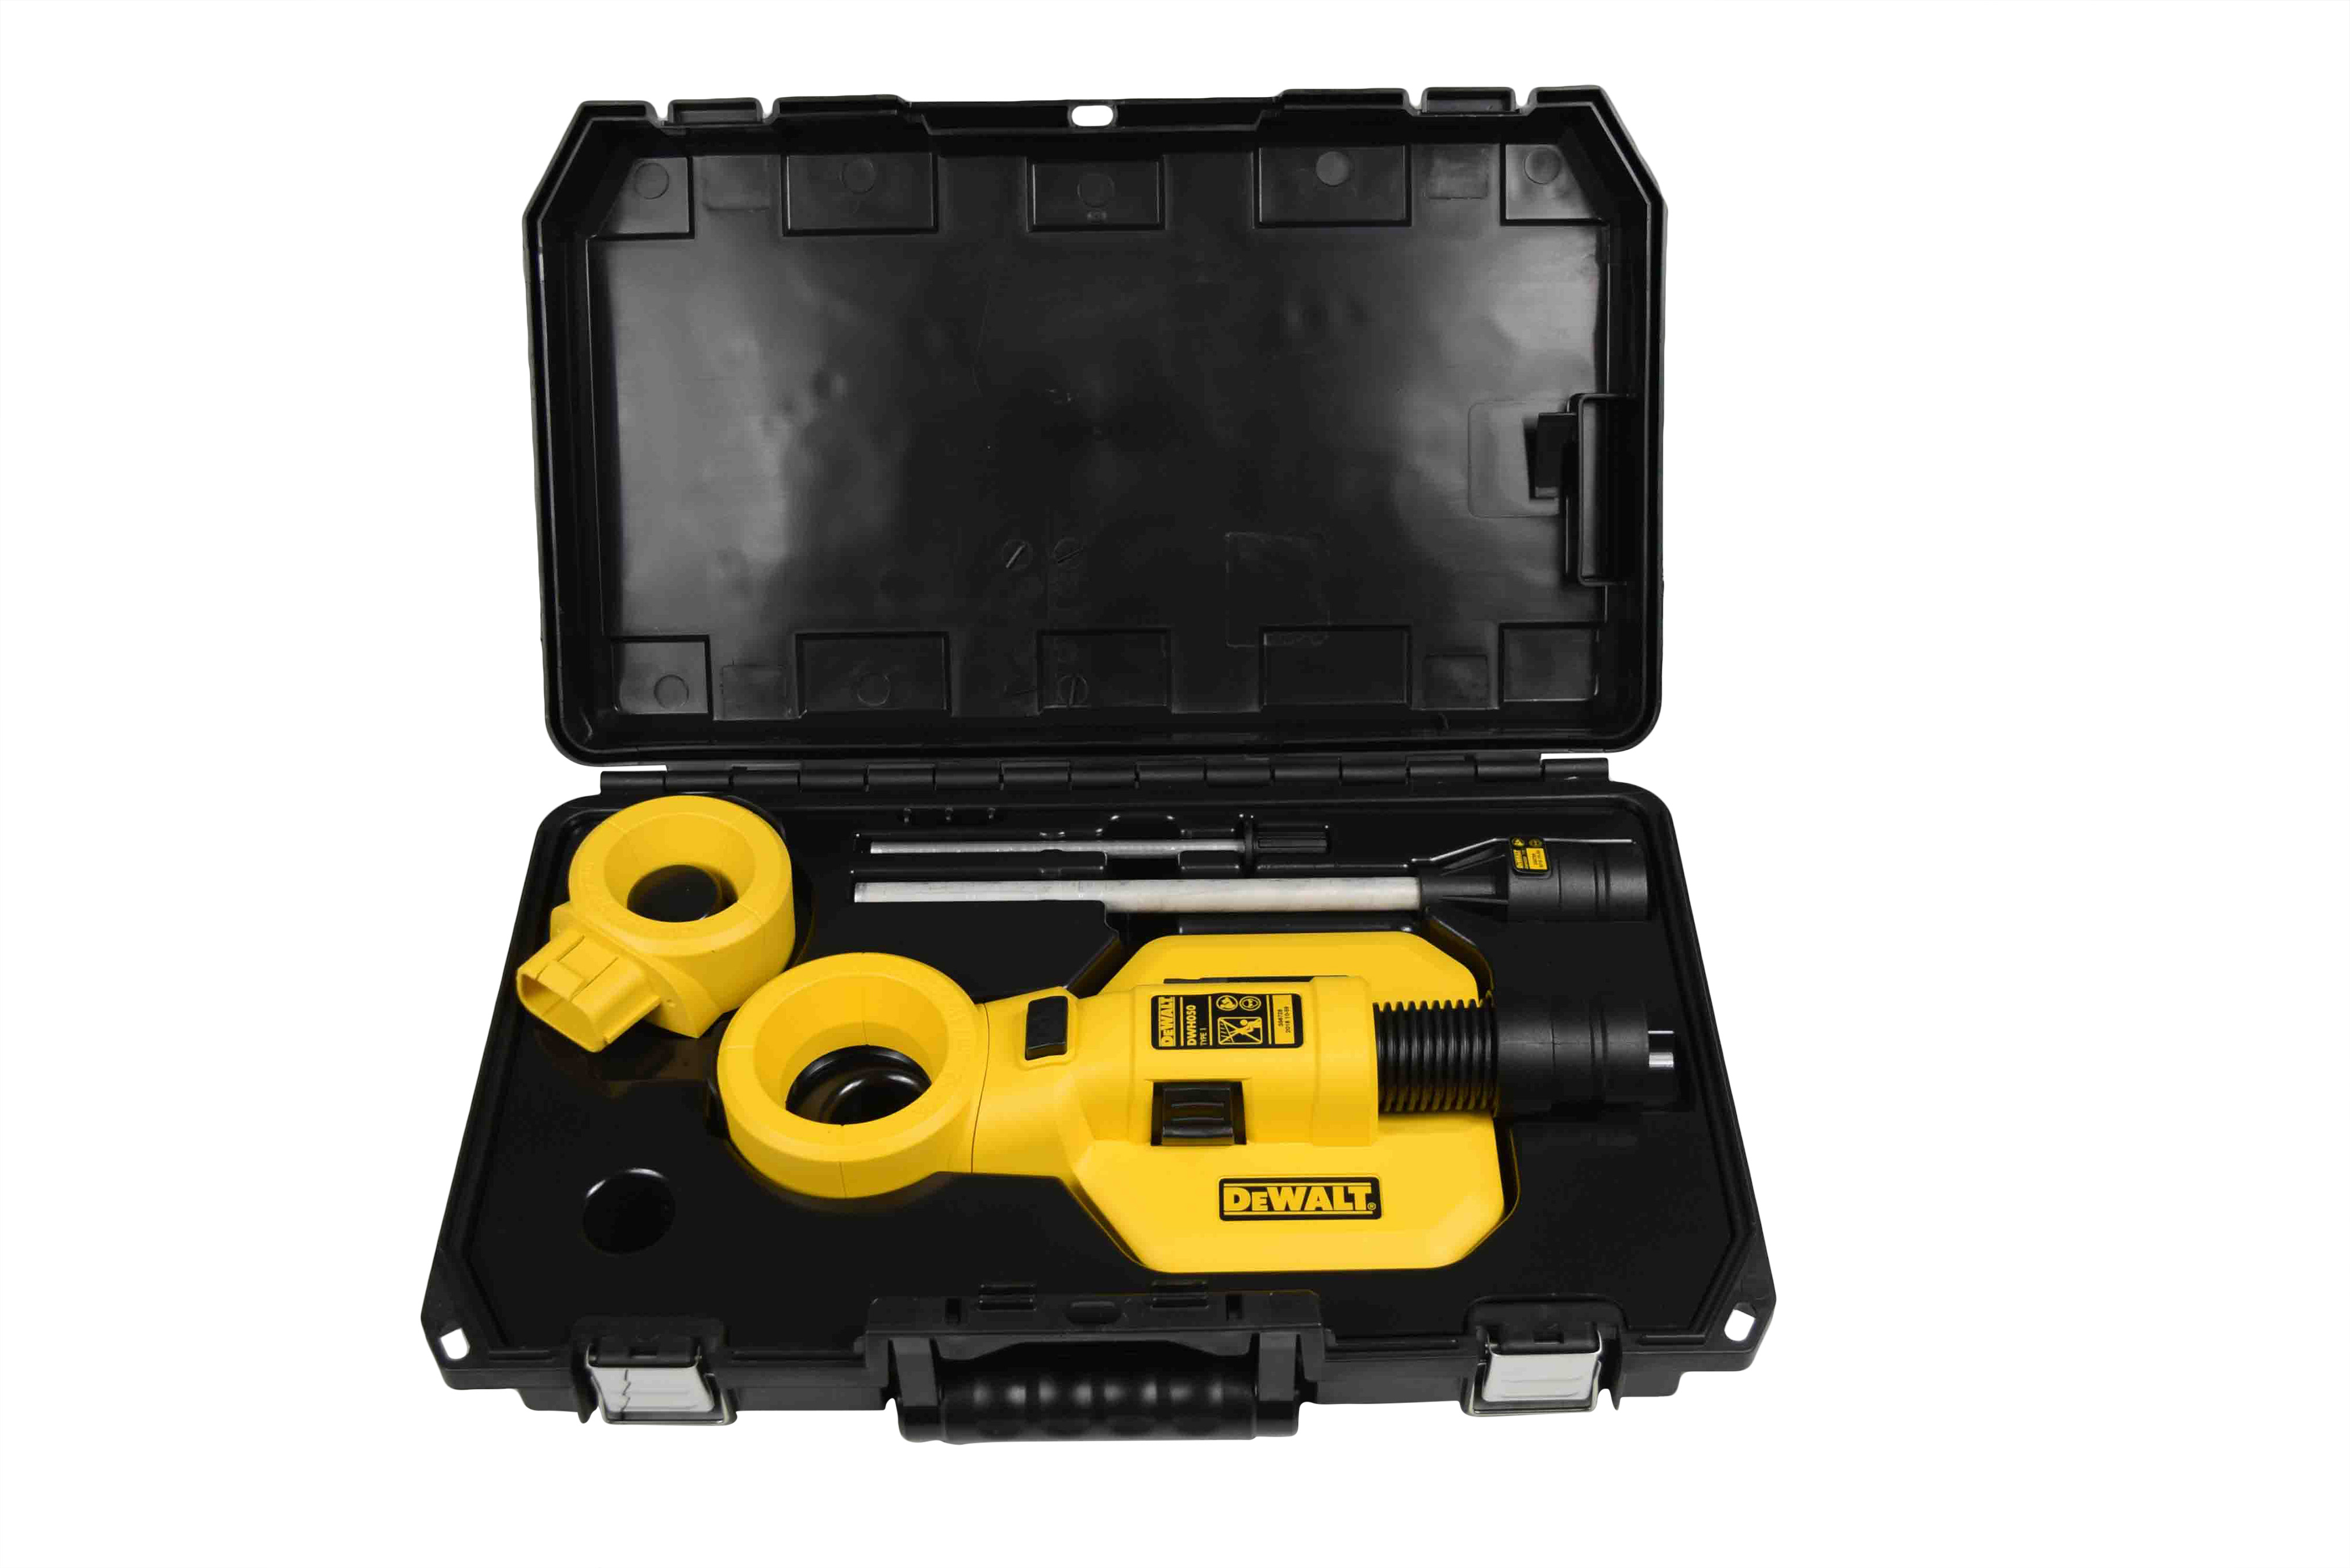 Dewalt Dust Extractor >> Dewalt Dwh050k Large Hammer Drilling Dust Extraction System Hole Cleaning